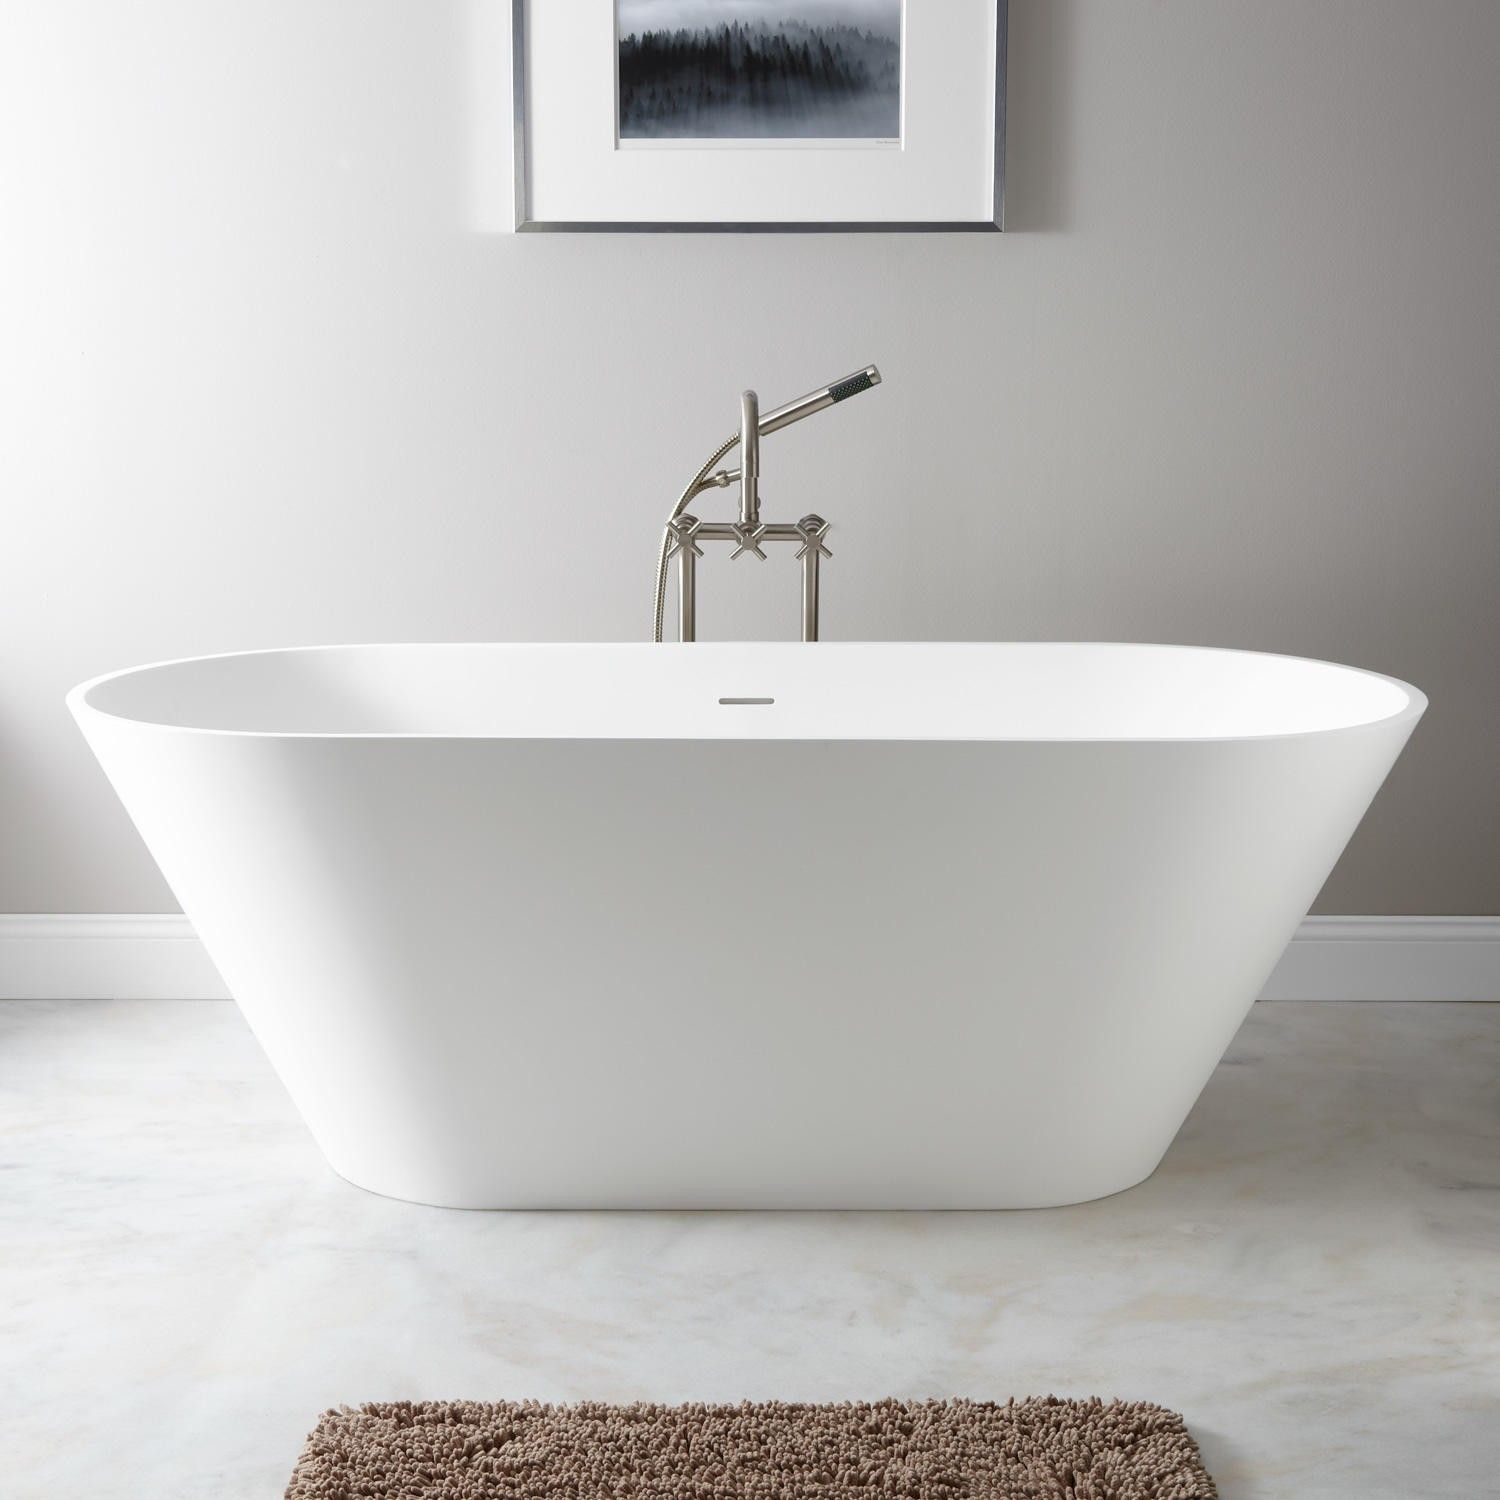 68 Oria Resin Freestanding Tub Solid Surface Tubs Bathtubs